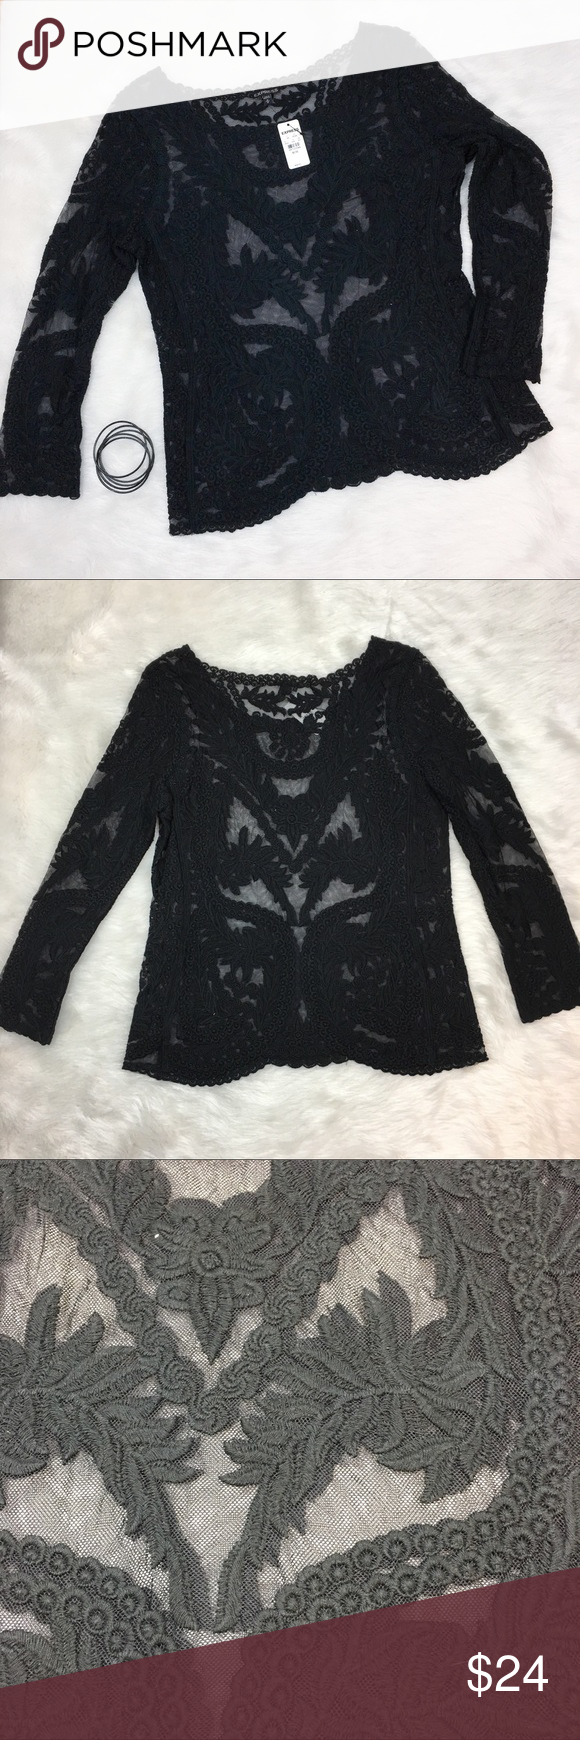 Express Black Lace 3/4 Sleeve top Express black lace 3/4 sleeve top. Size medium. Approximate measurements are 25' long, 16' sleeve, & 18' bust. NWT. Express Tops